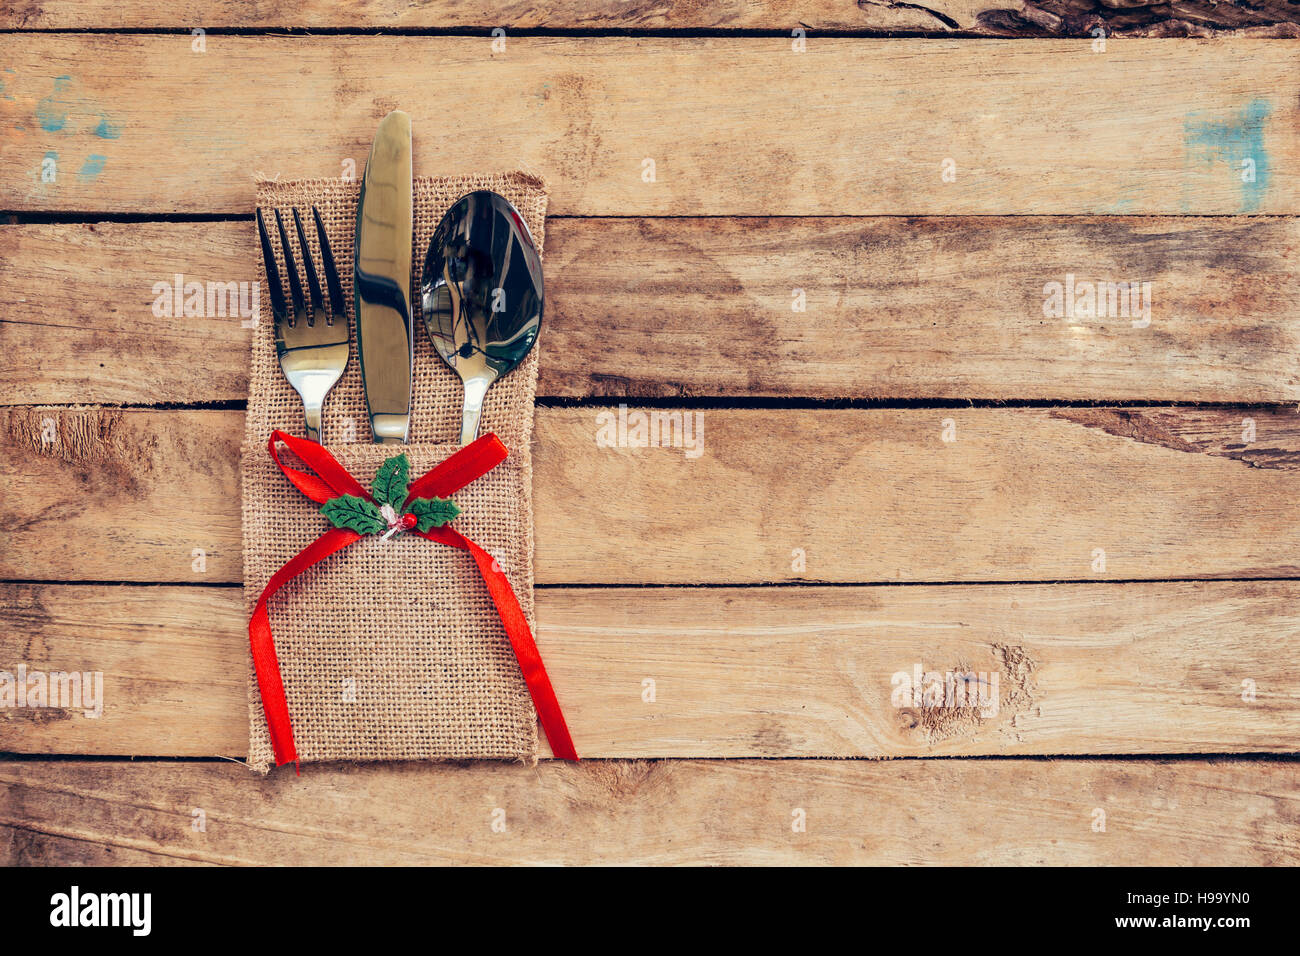 Christmas table place setting and silverware on wood with space and Table setting on wood background vintage. & Christmas table place setting and silverware on wood with space and ...